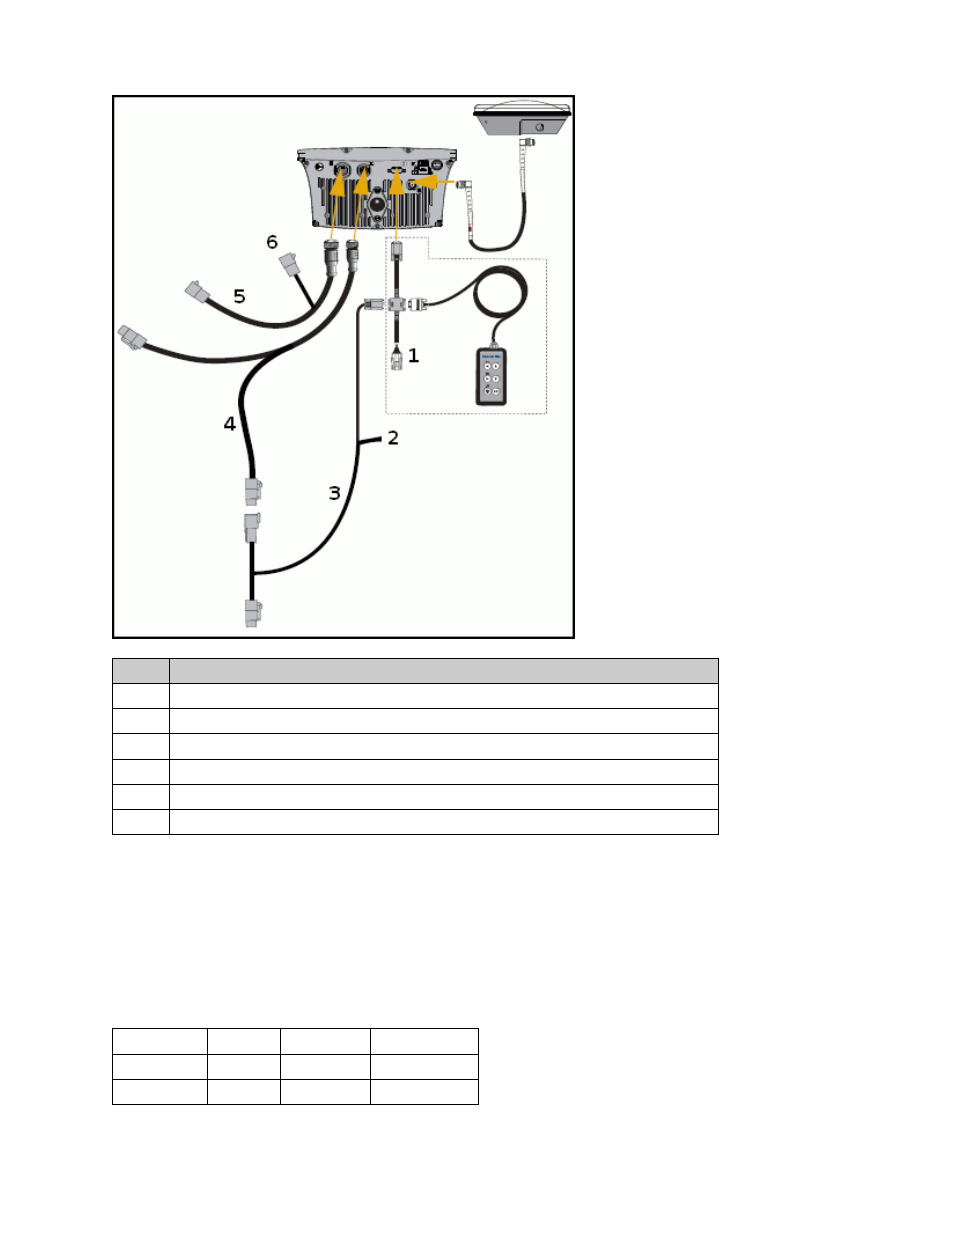 External receiver support ag leader ez guide 500 getting started external receiver support ag leader ez guide 500 getting started guide user manual page 72 105 sciox Images